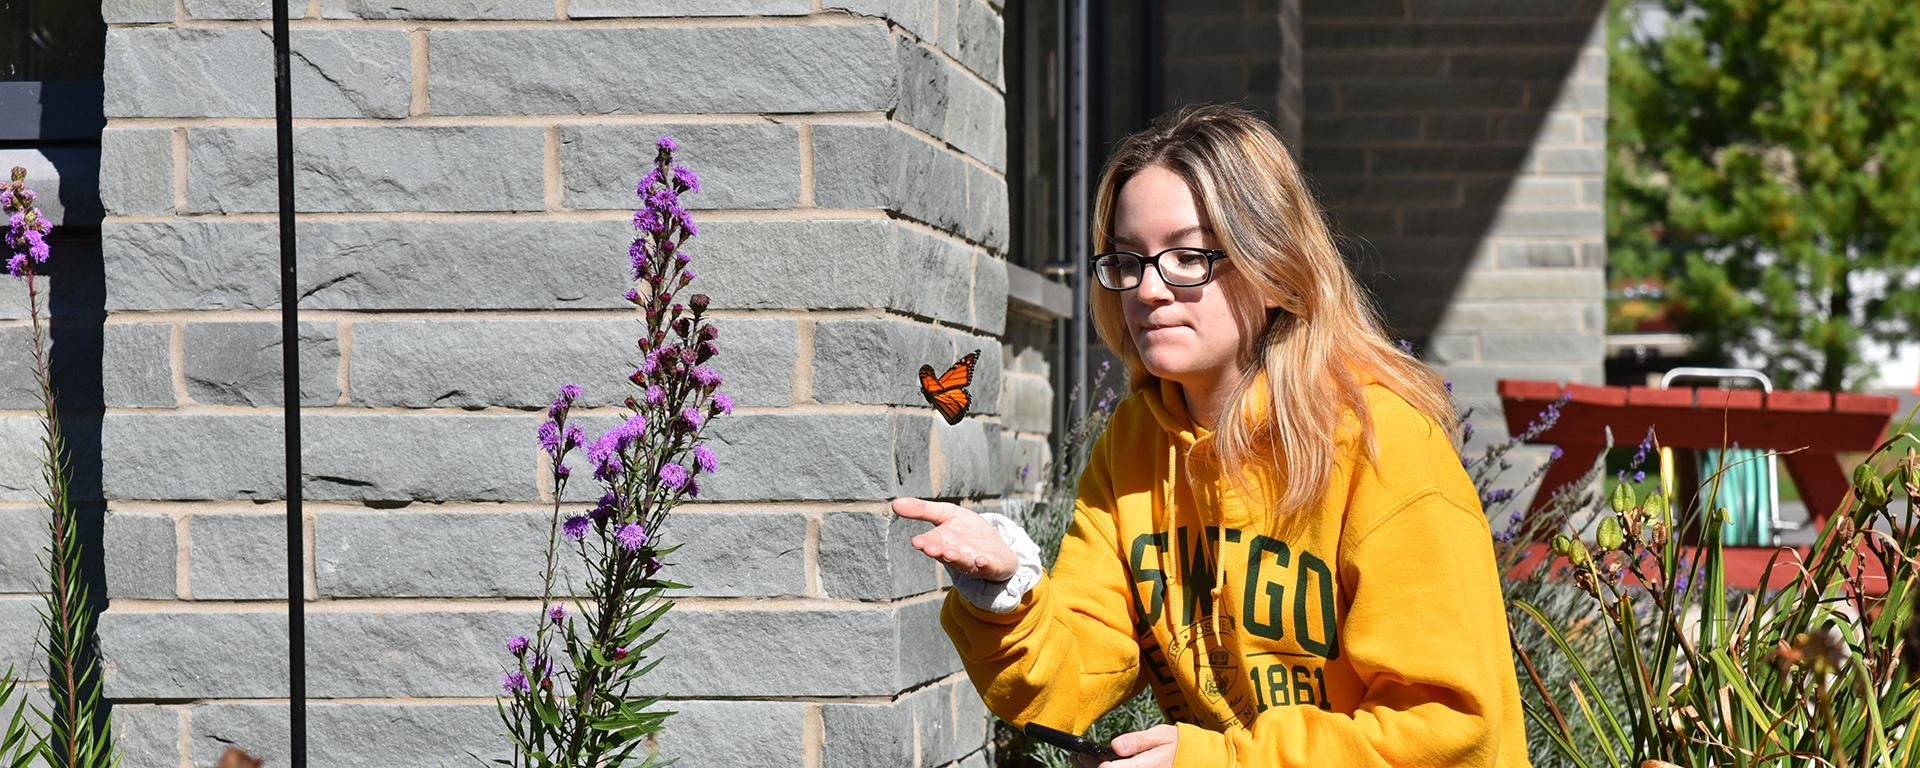 Elena Jones watches a butterfly flying close by